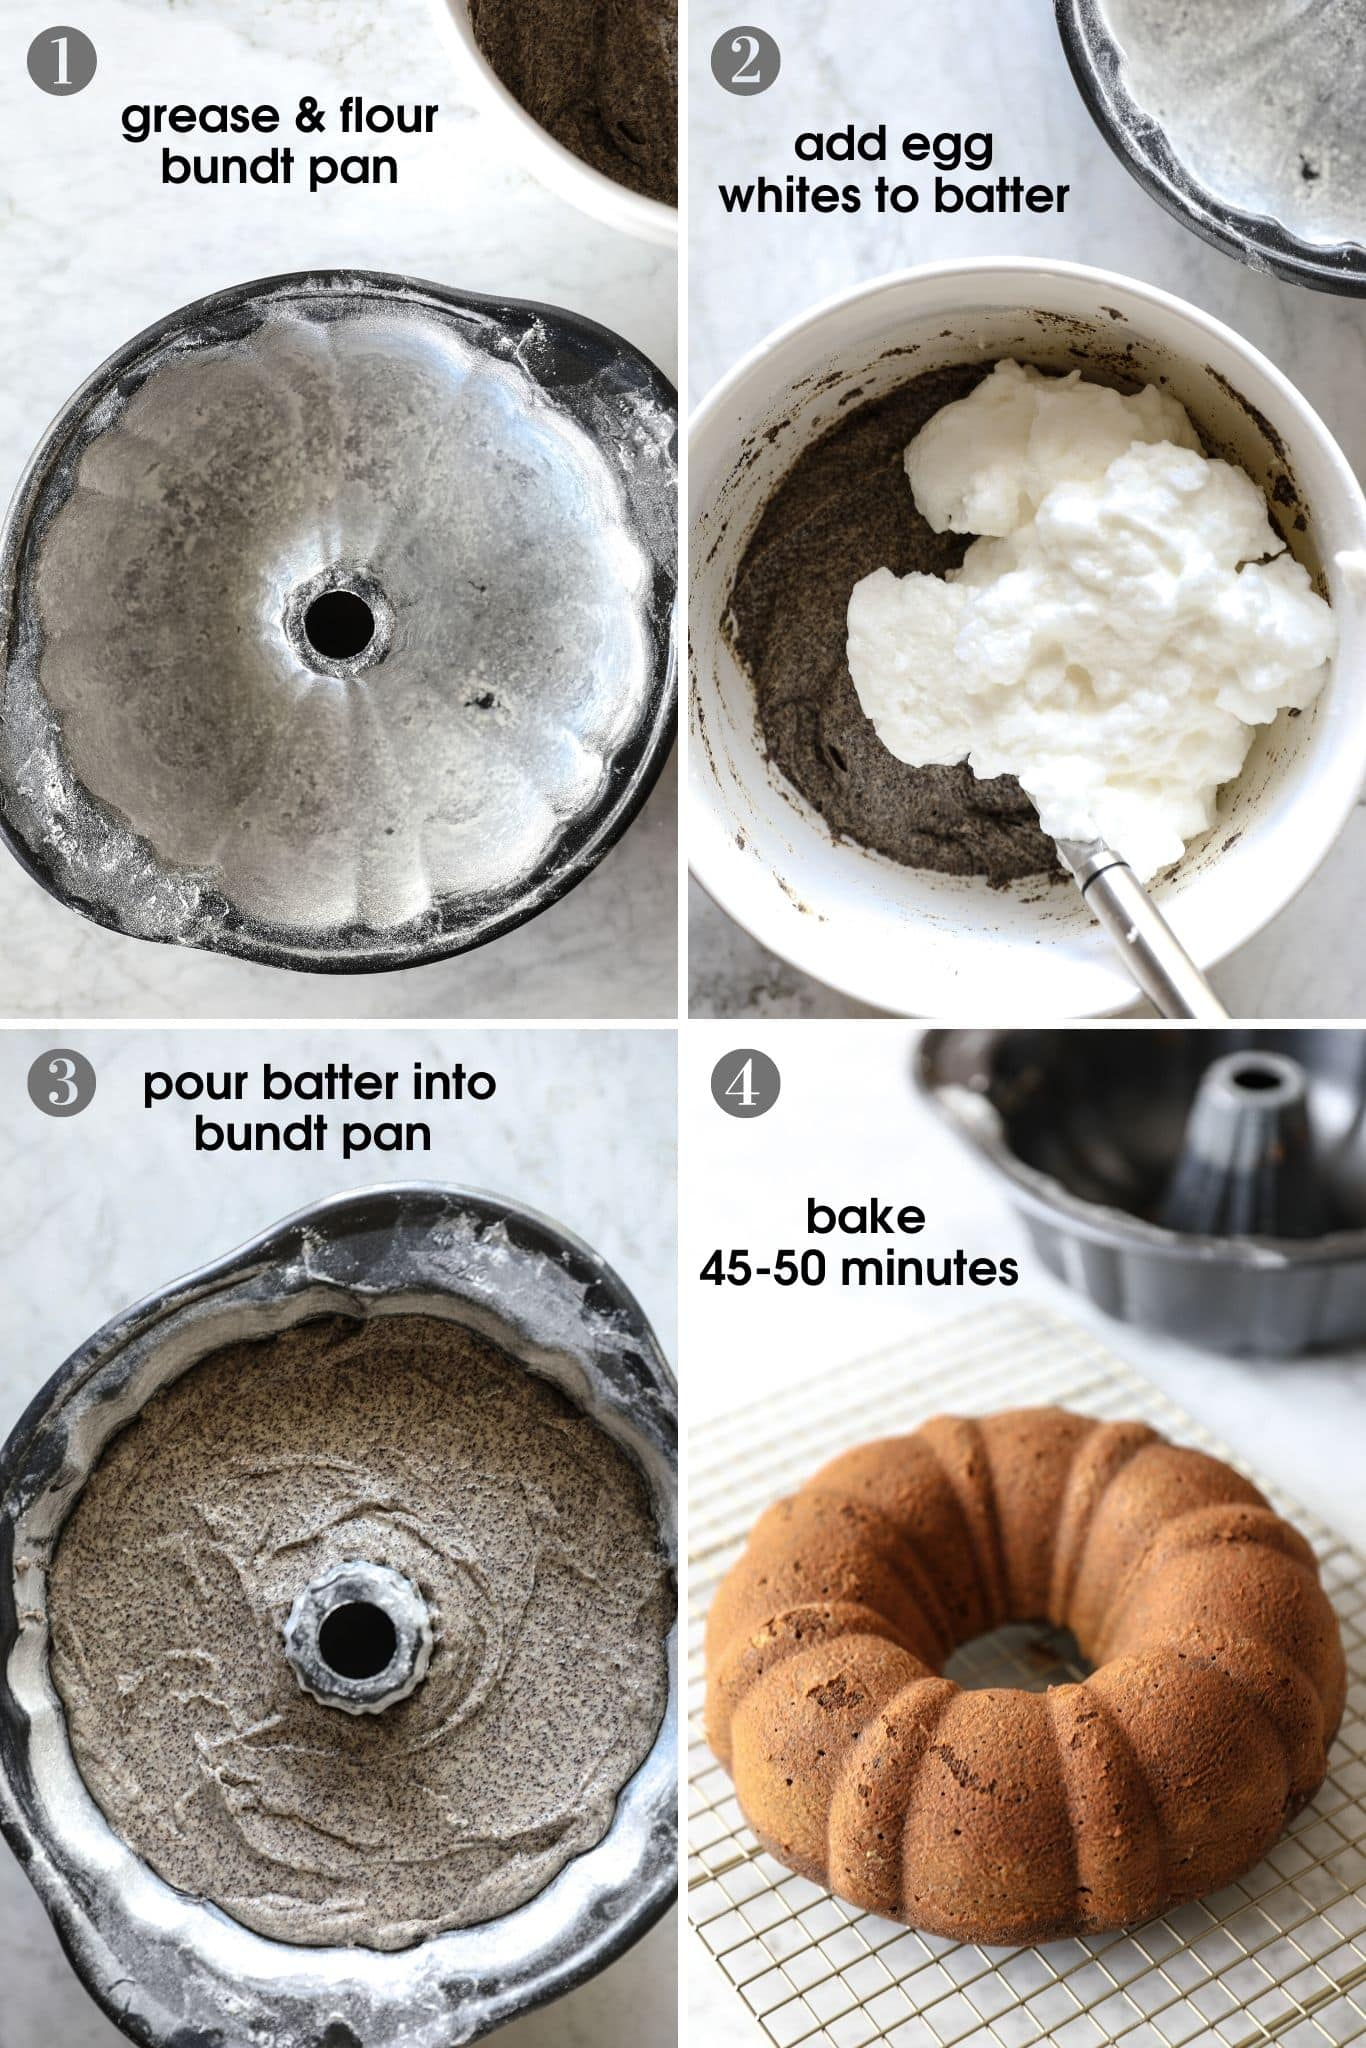 four photos showing a cooking method for poppy seed bundt cake, including how to prep the bundt pan, how to fold egg whites into the batter, placing it into a bundt pan and the finished cake after baking for 45 minutes | from verygoodcook.com